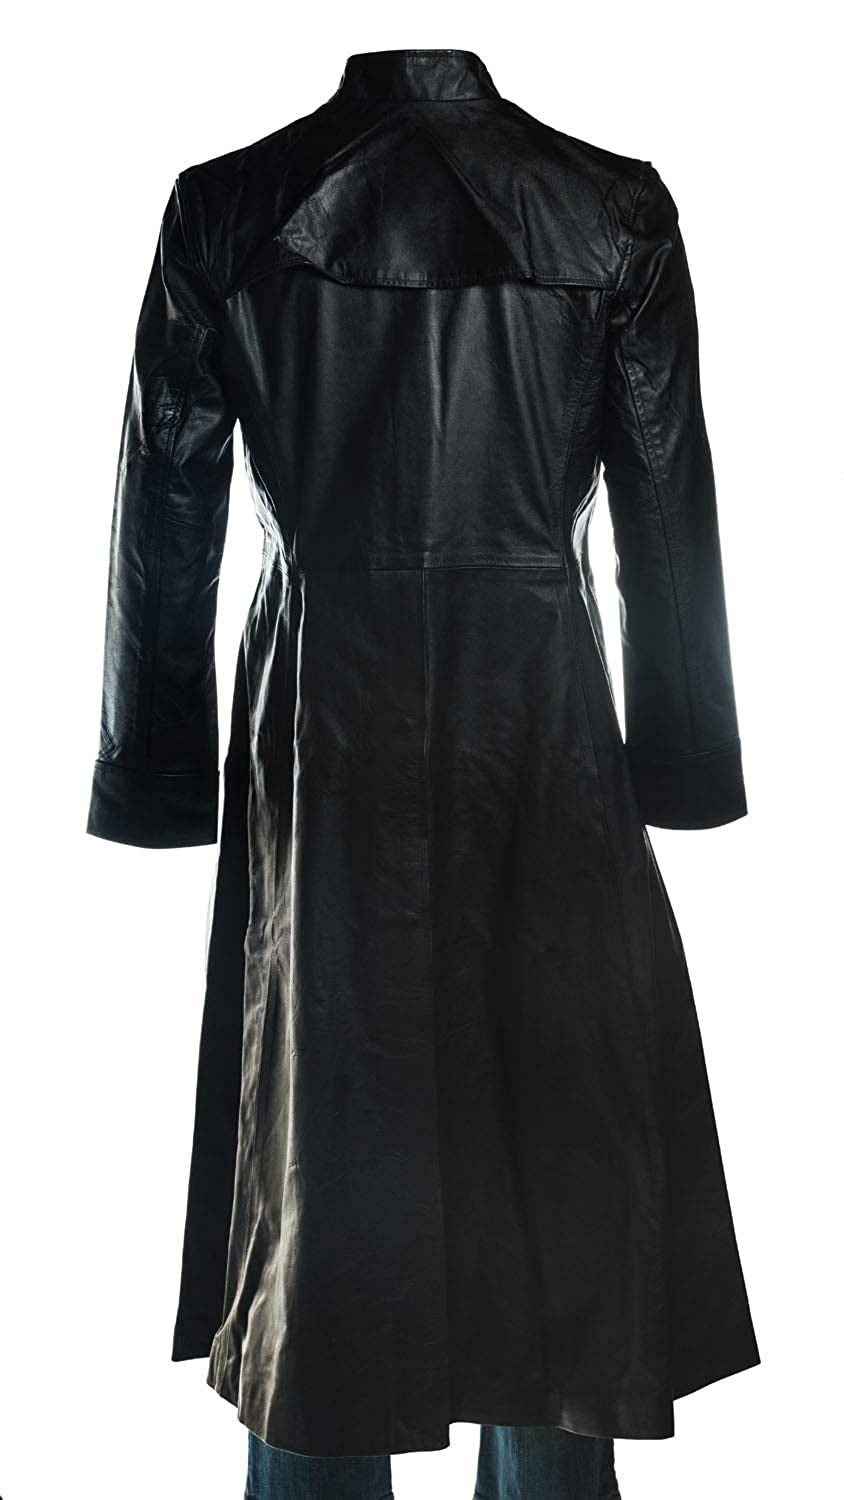 d558c90553d Matrix Neo The One Keanu Reeves Mens Gothic Black Leather Trench ...